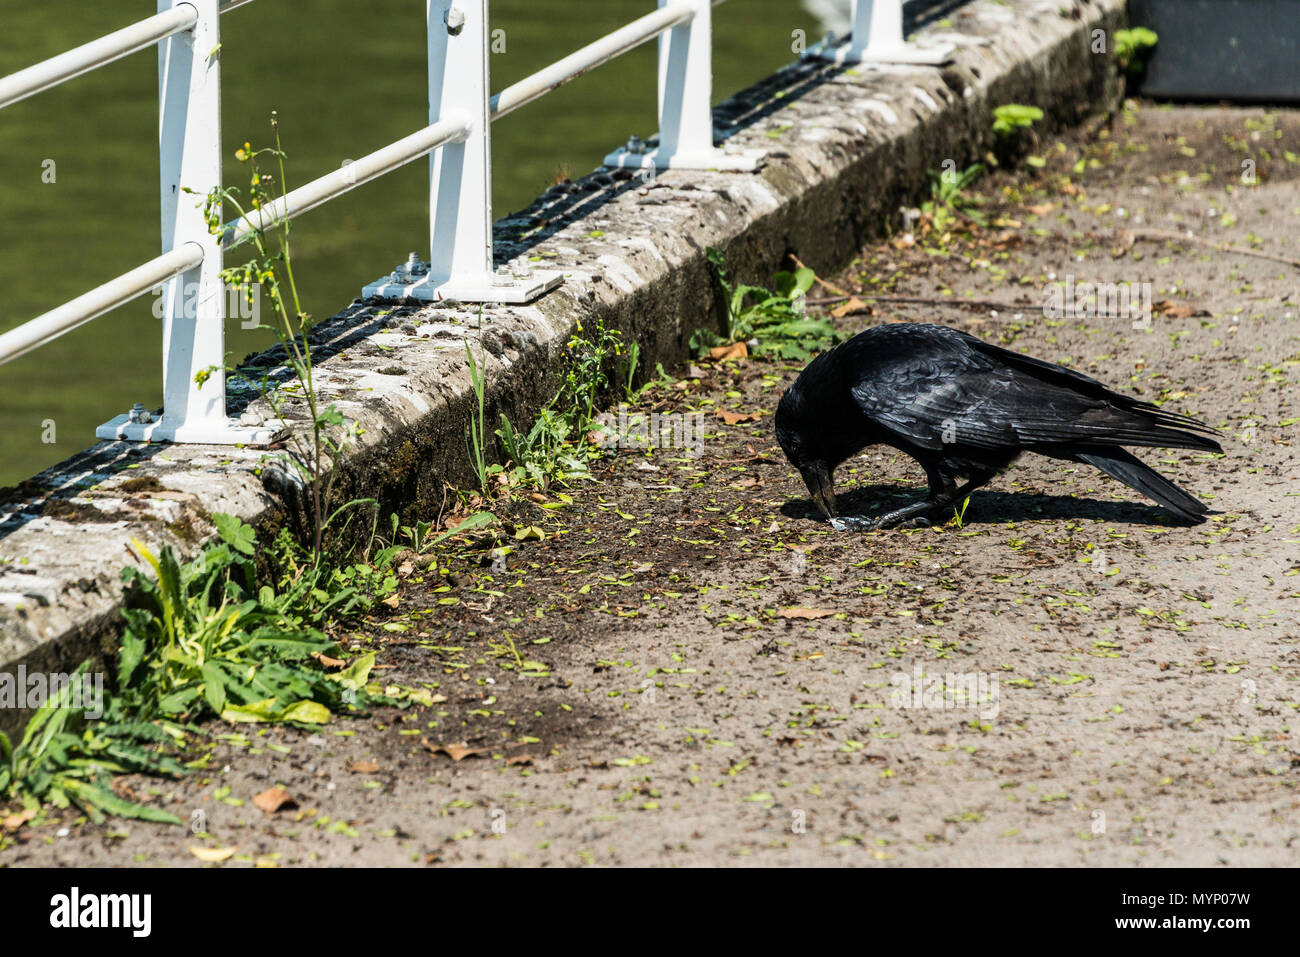 A carrion crow (Corvus corone) pecking at litter on the towpath by the Kennet & Avon canal - Stock Image